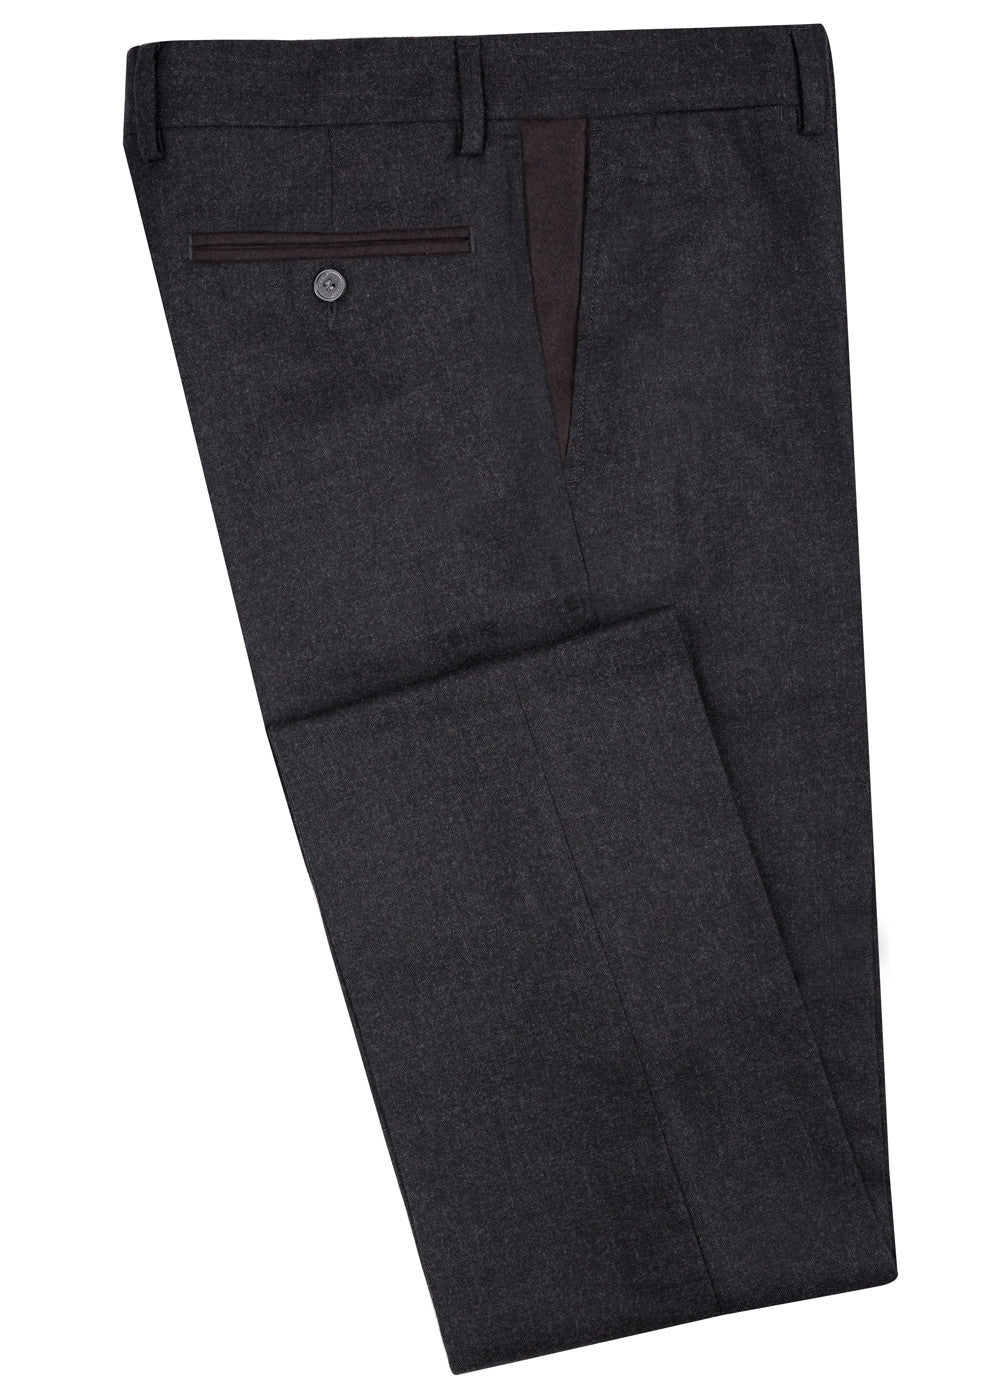 Charcoal Wool Contrast Pant